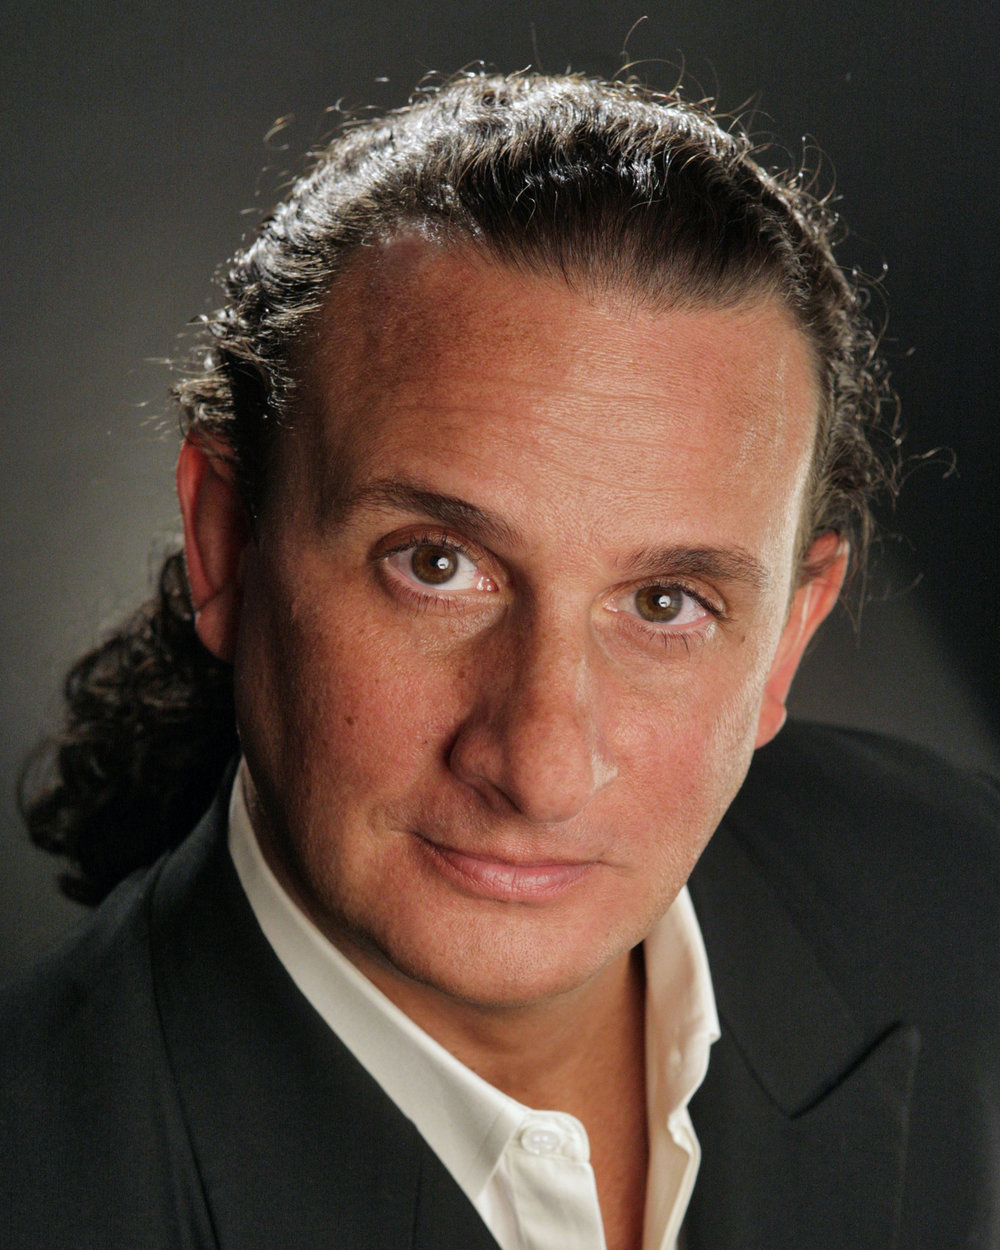 David Cangelosi - Artistic/Program Director